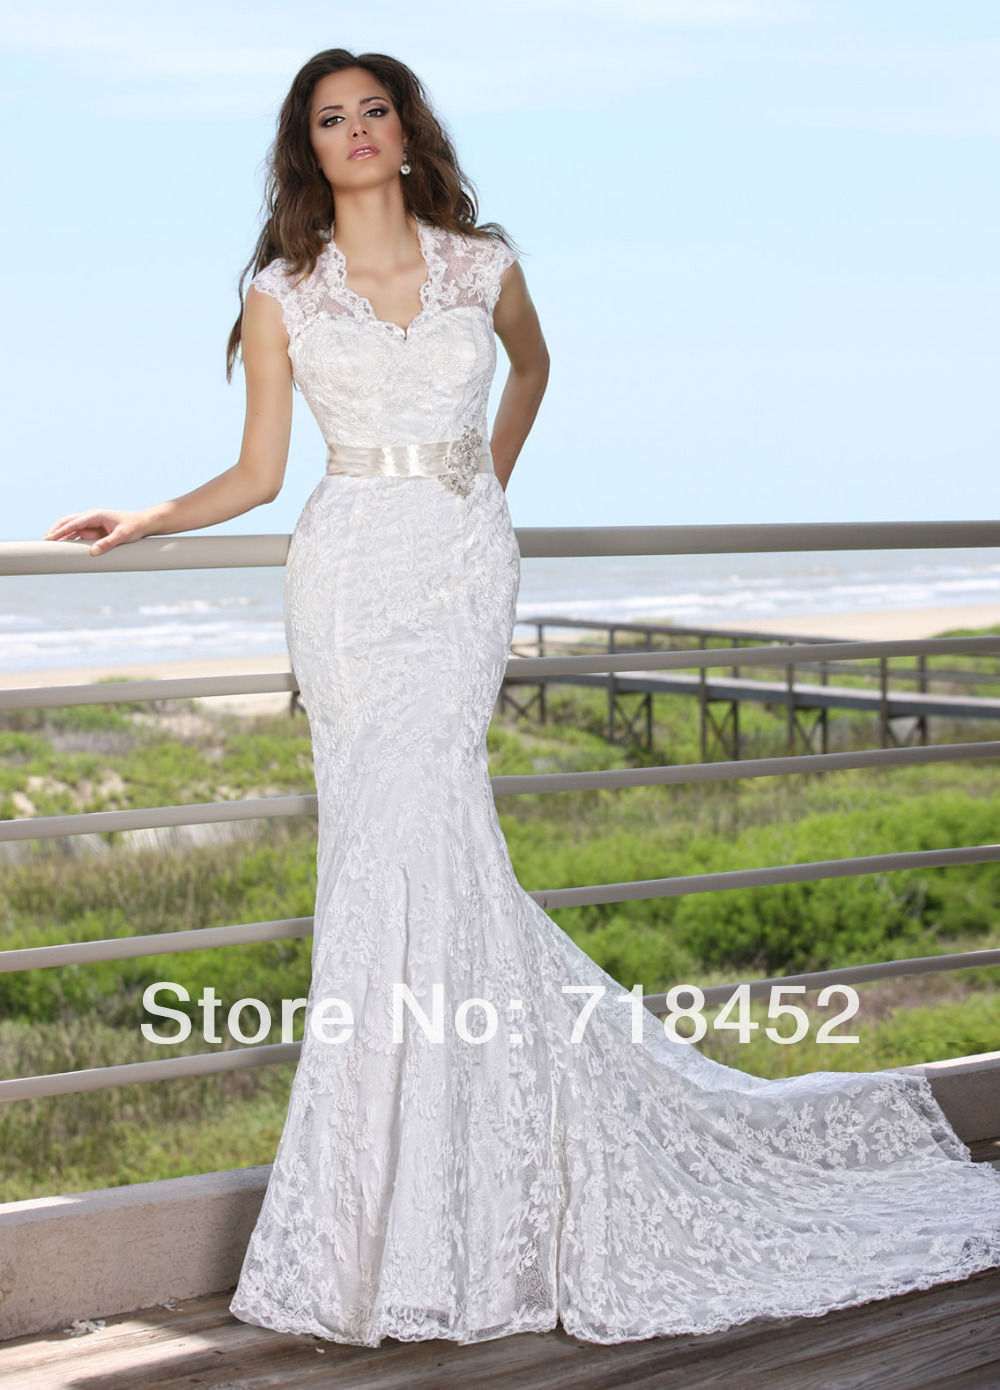 Popular Inexpensive Bridal GownsBuy Cheap Inexpensive Bridal